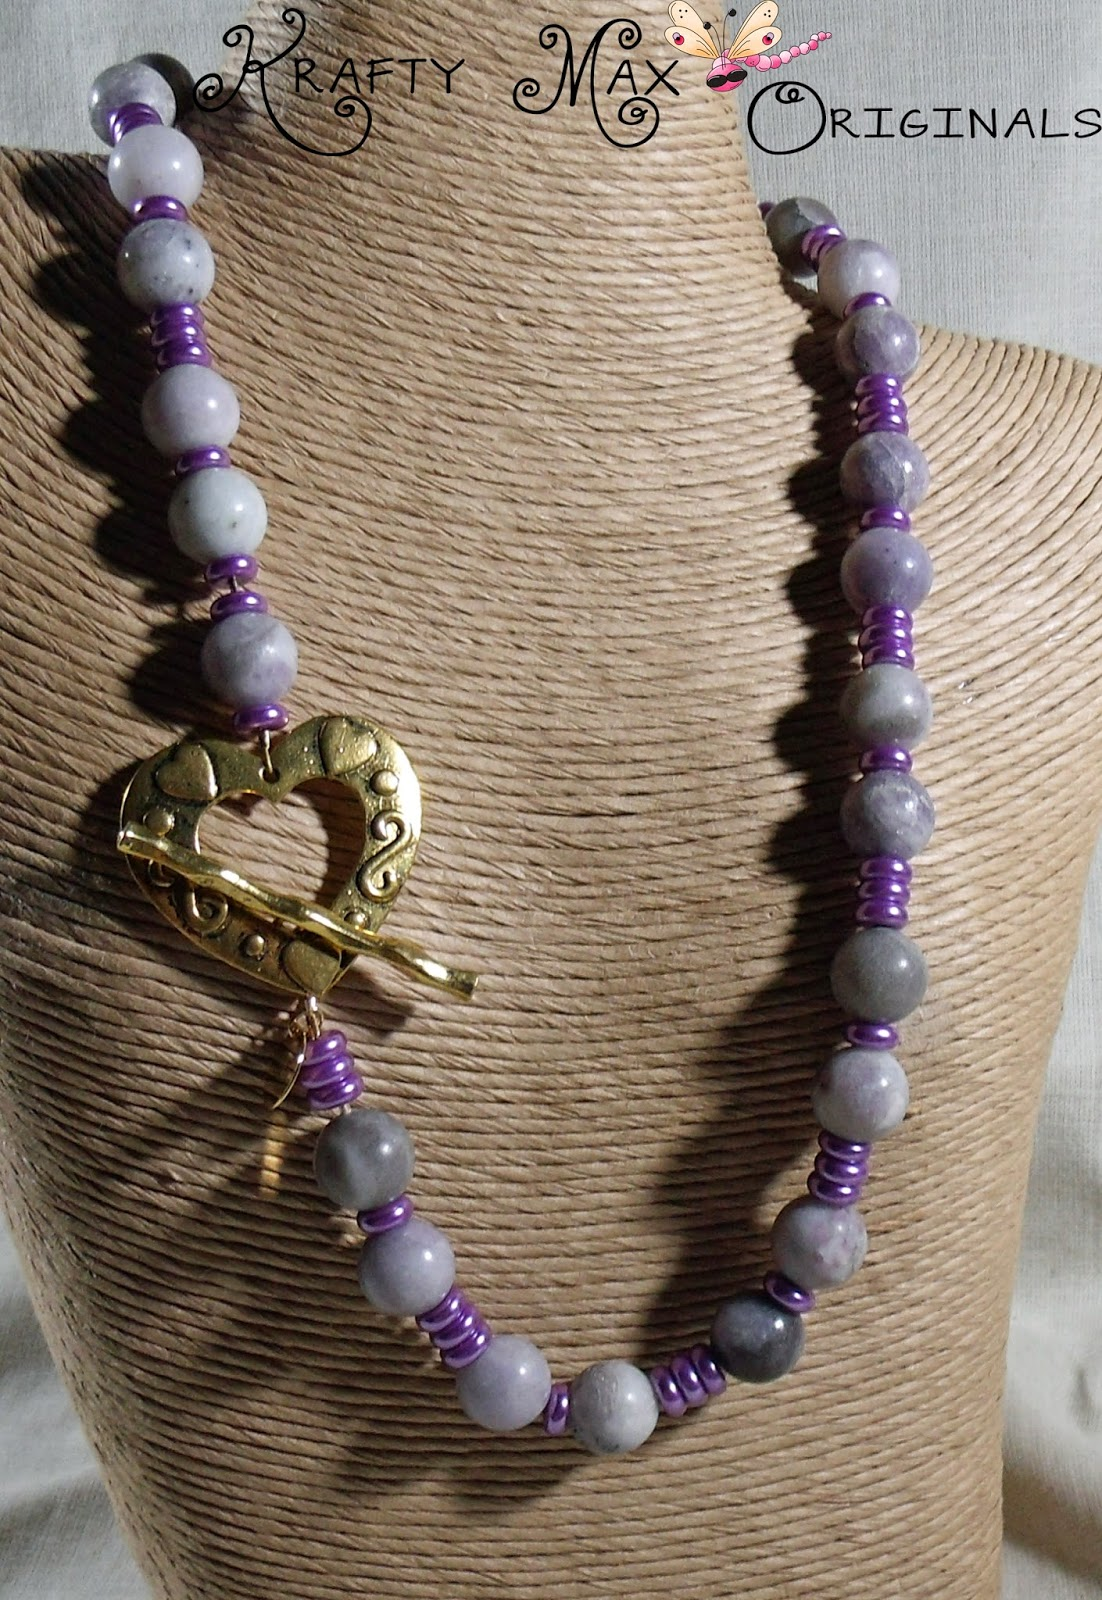 http://www.artfire.com/ext/shop/product_view/KraftyMax/9635829/purple_gemstone_with_purple_glass_pearls_fun_and_flashy_necklace_set/handmade/jewelry/sets/glass